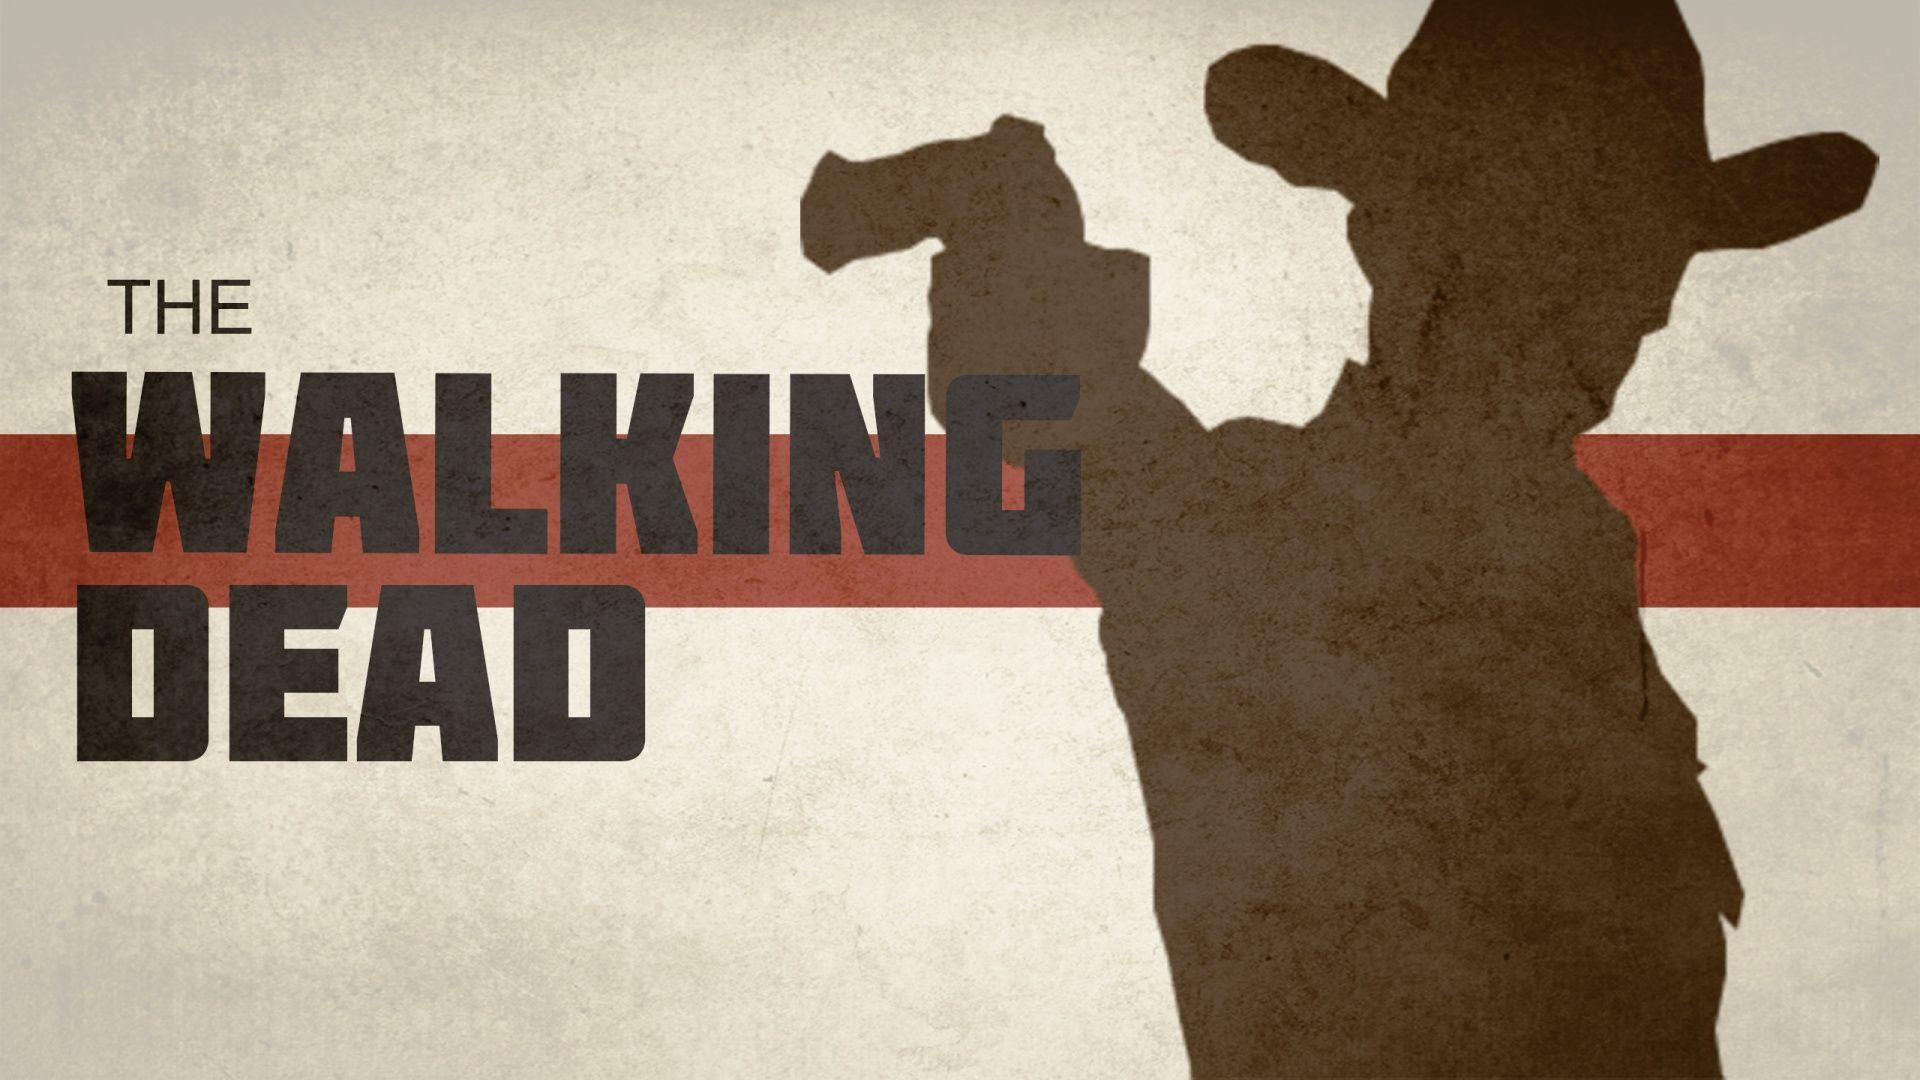 Image For > The Walking Dead Wallpapers Hd 1920x1080